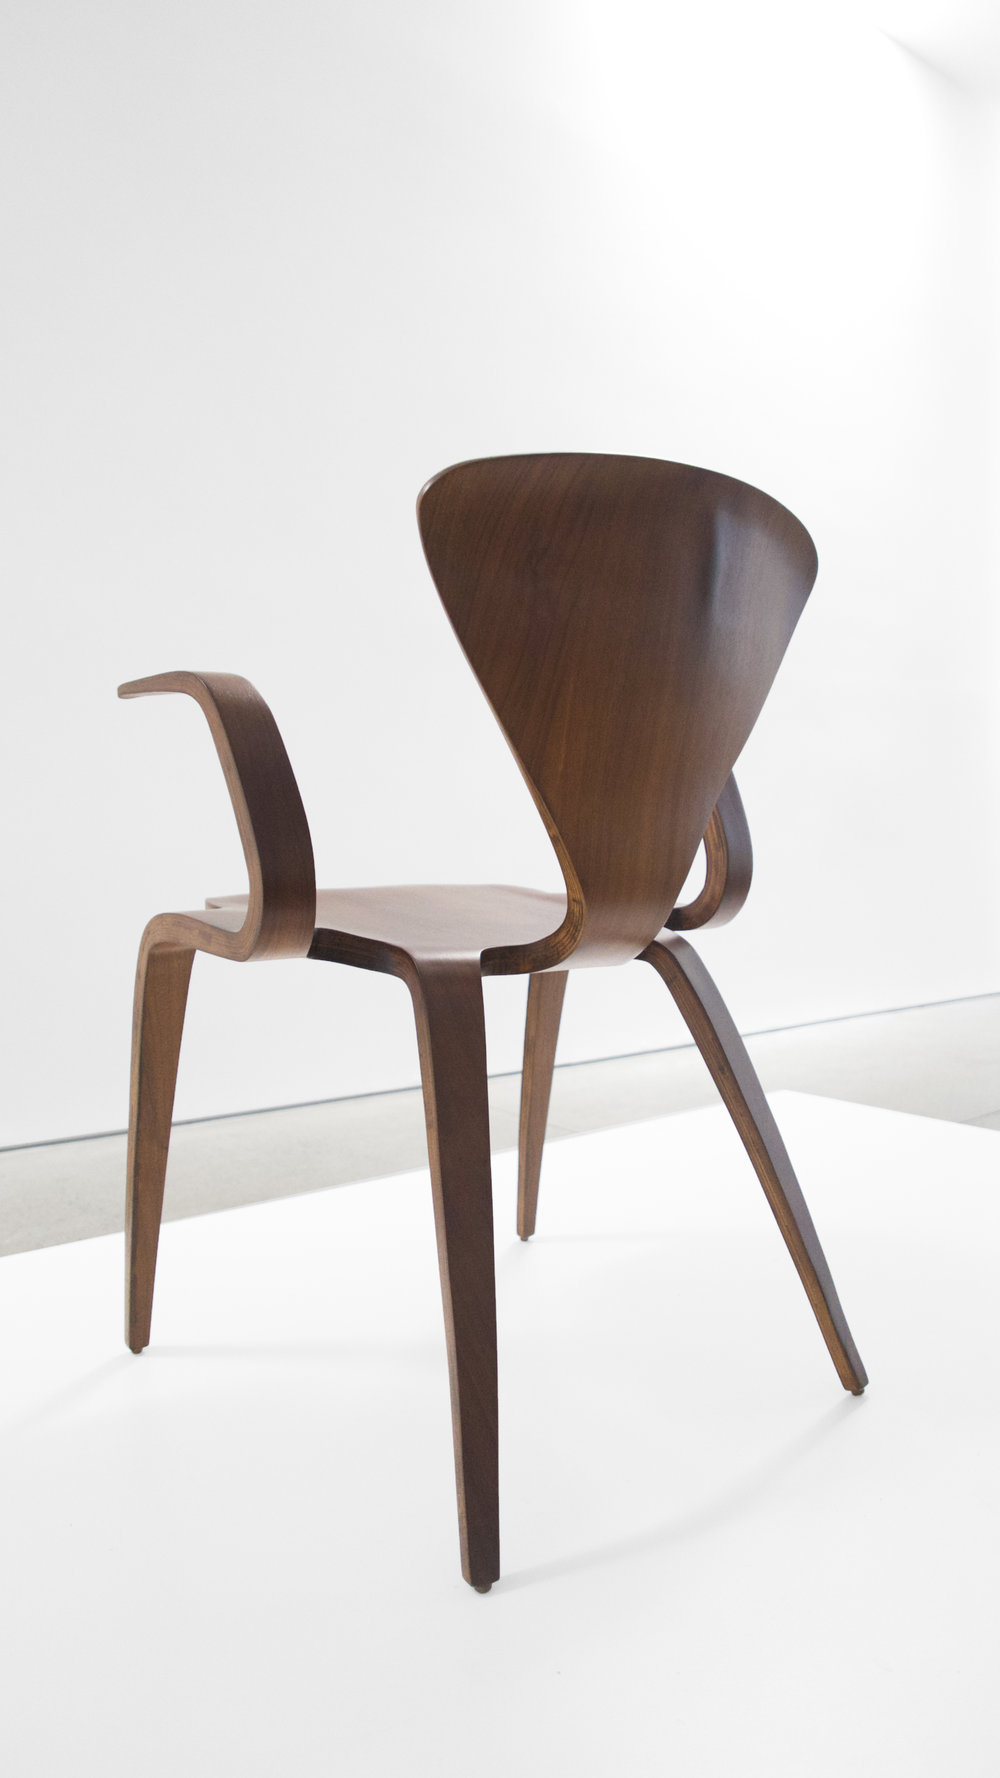 6. Norman Cherner, Rare Prototype Chair, c. 1950, walnut, 30.75H x 23W x 23D inches.jpg